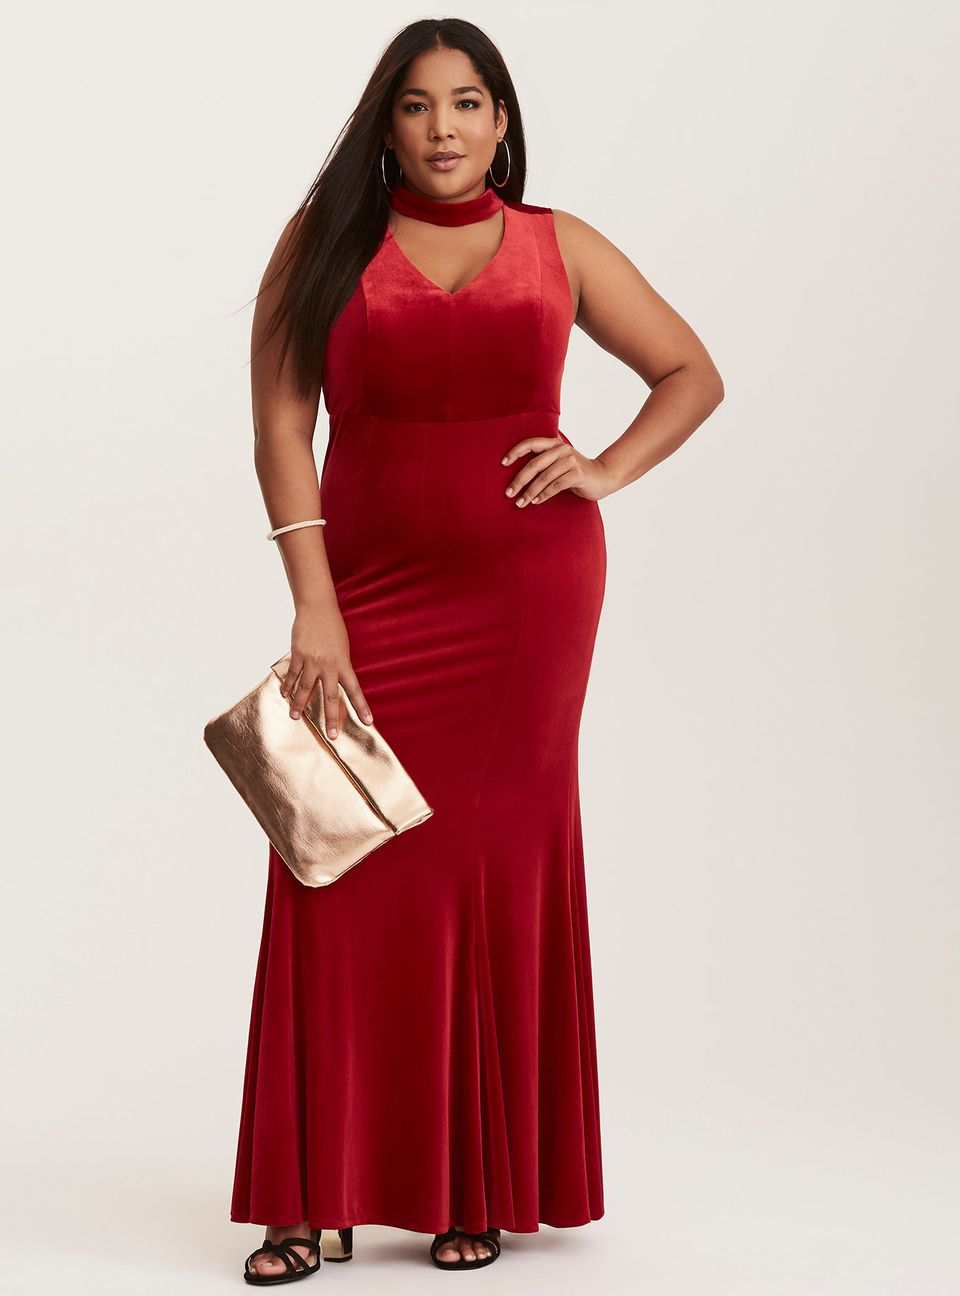 f428e3f5fff4 31 Absolutely Stunning Plus Size Prom Dresses Under $150 | HuffPost Life